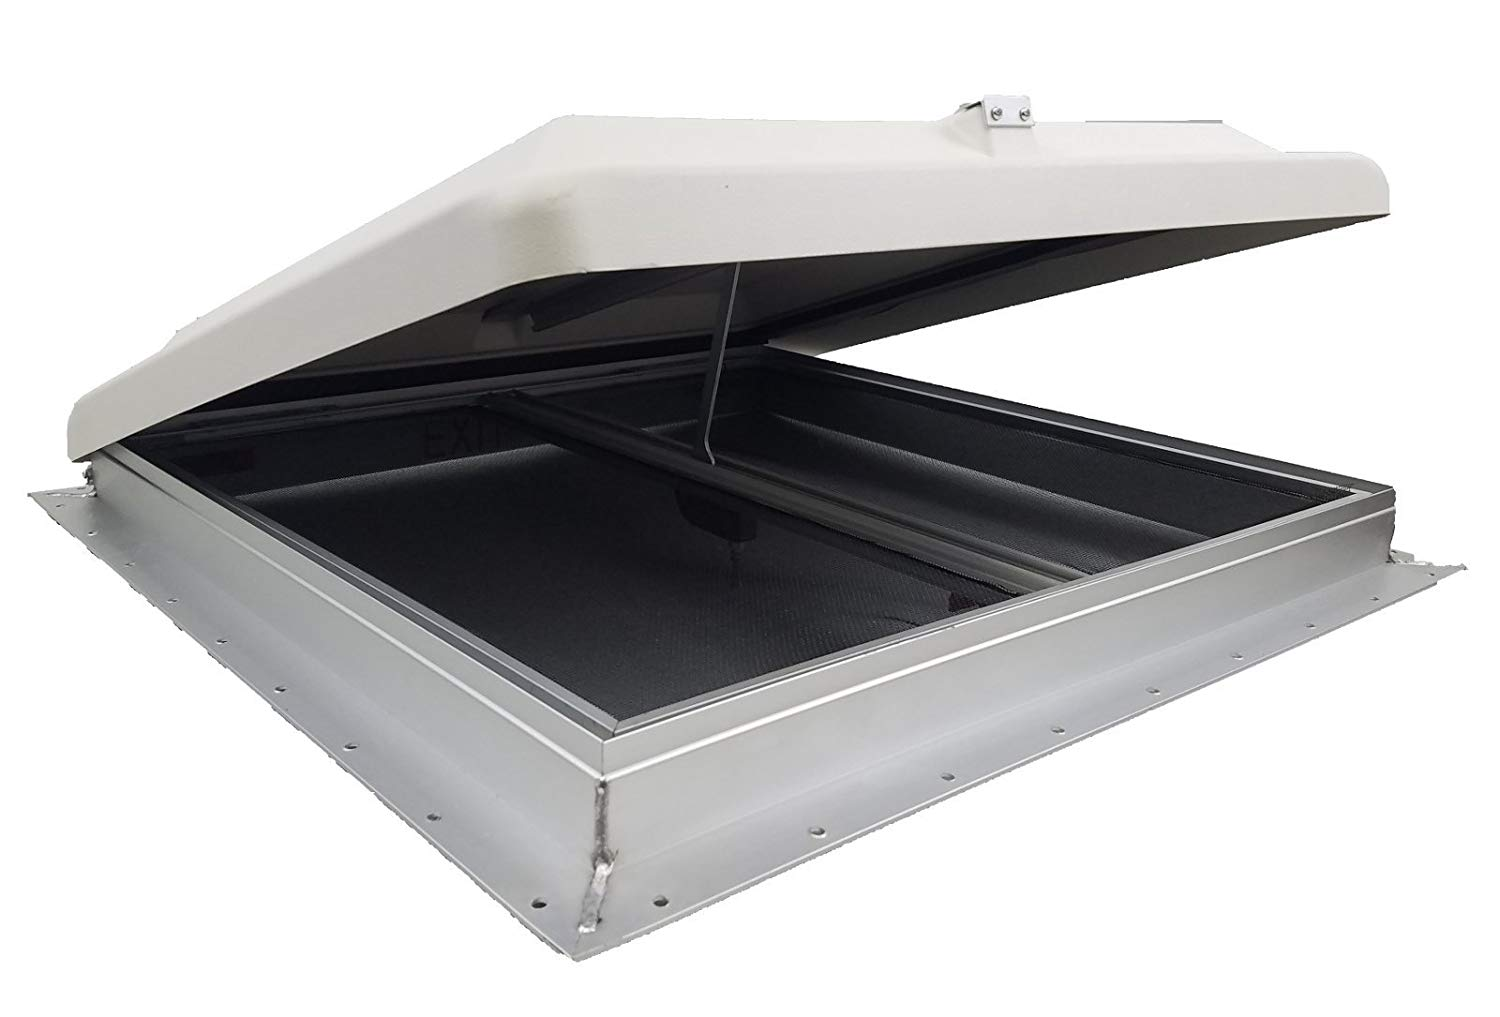 Hengs 68631-1 26 Inch x 26 Inch Super Exit Dome Escape Hatch with Garnish and White Lid